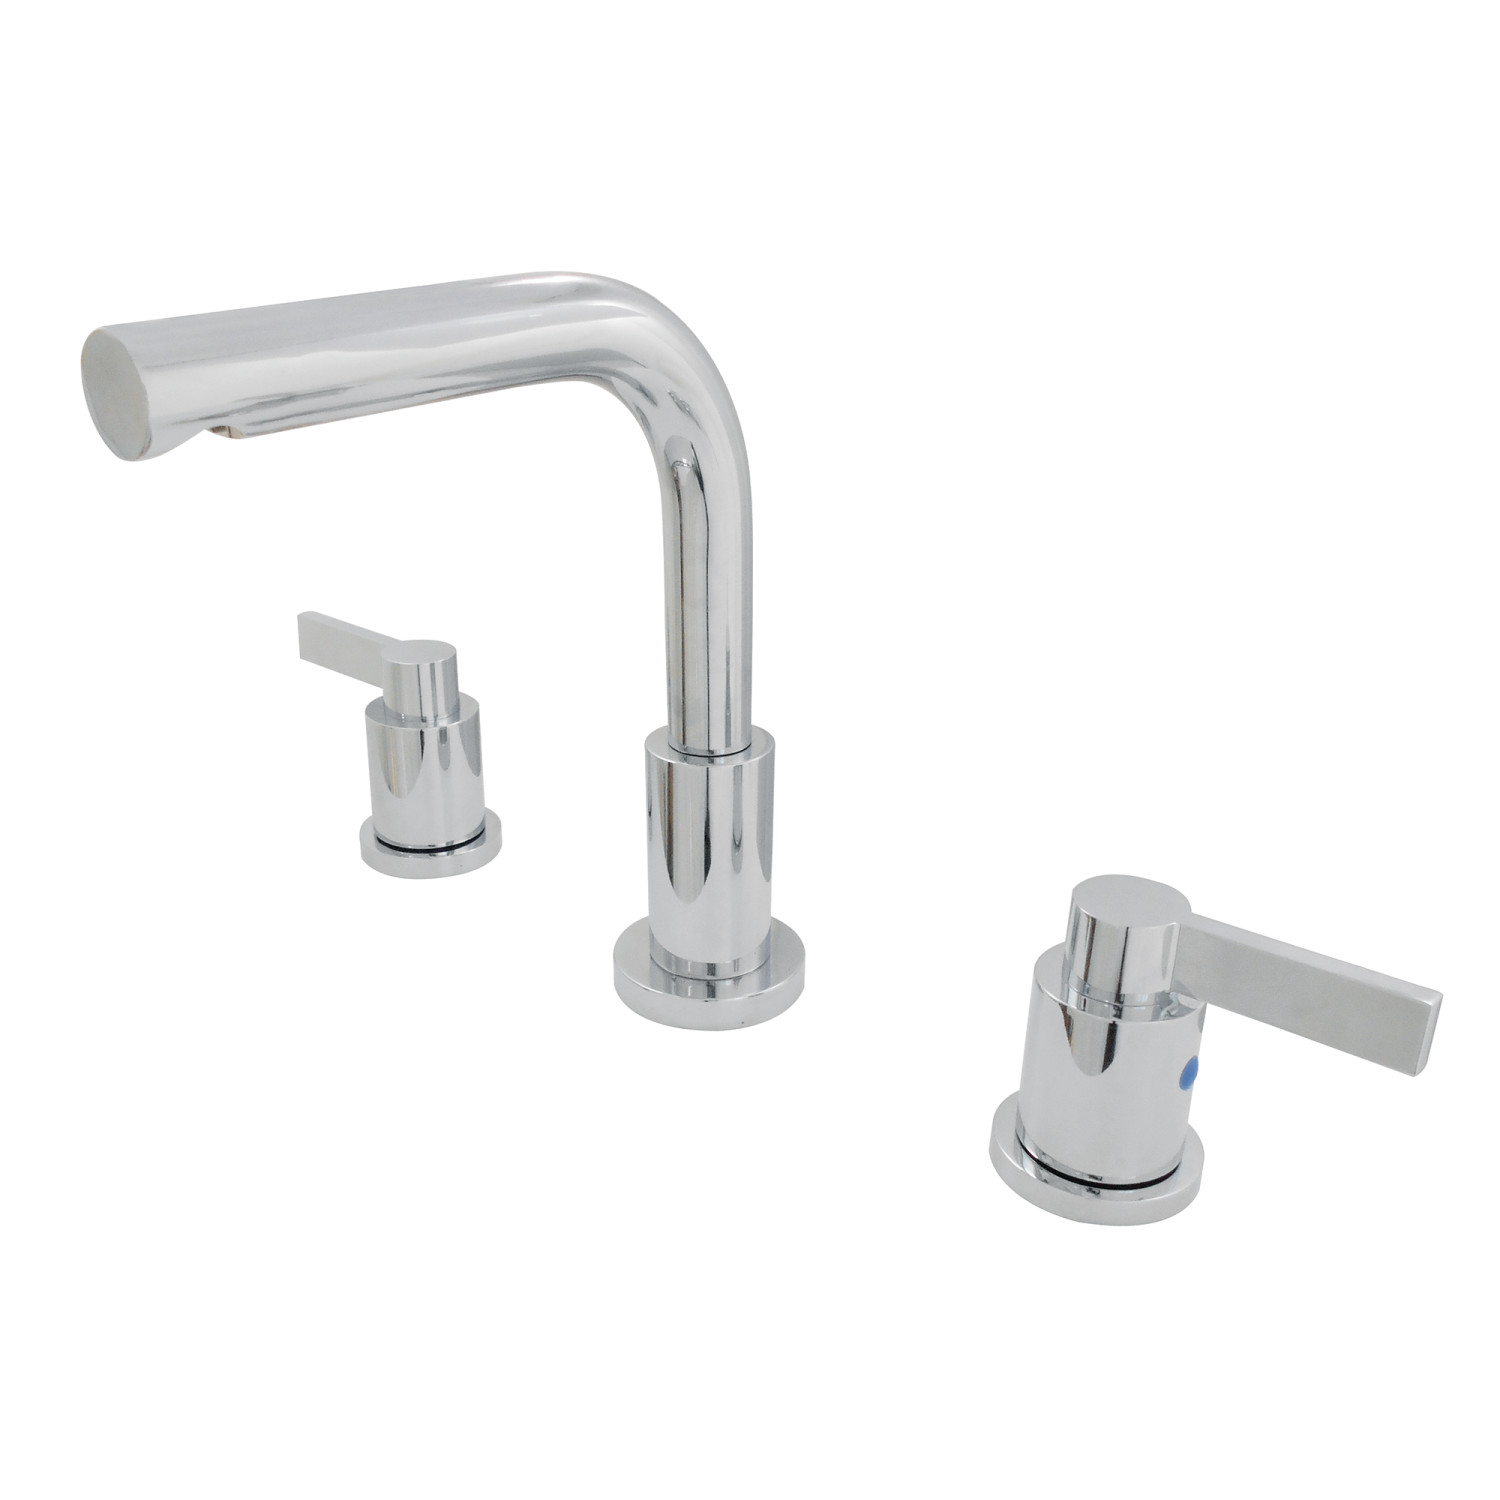 Modern Two-Handle 3-Hole Deck Mounted Widespread Bathroom Faucet Brass Pop-Up in Polished Chrome Finish